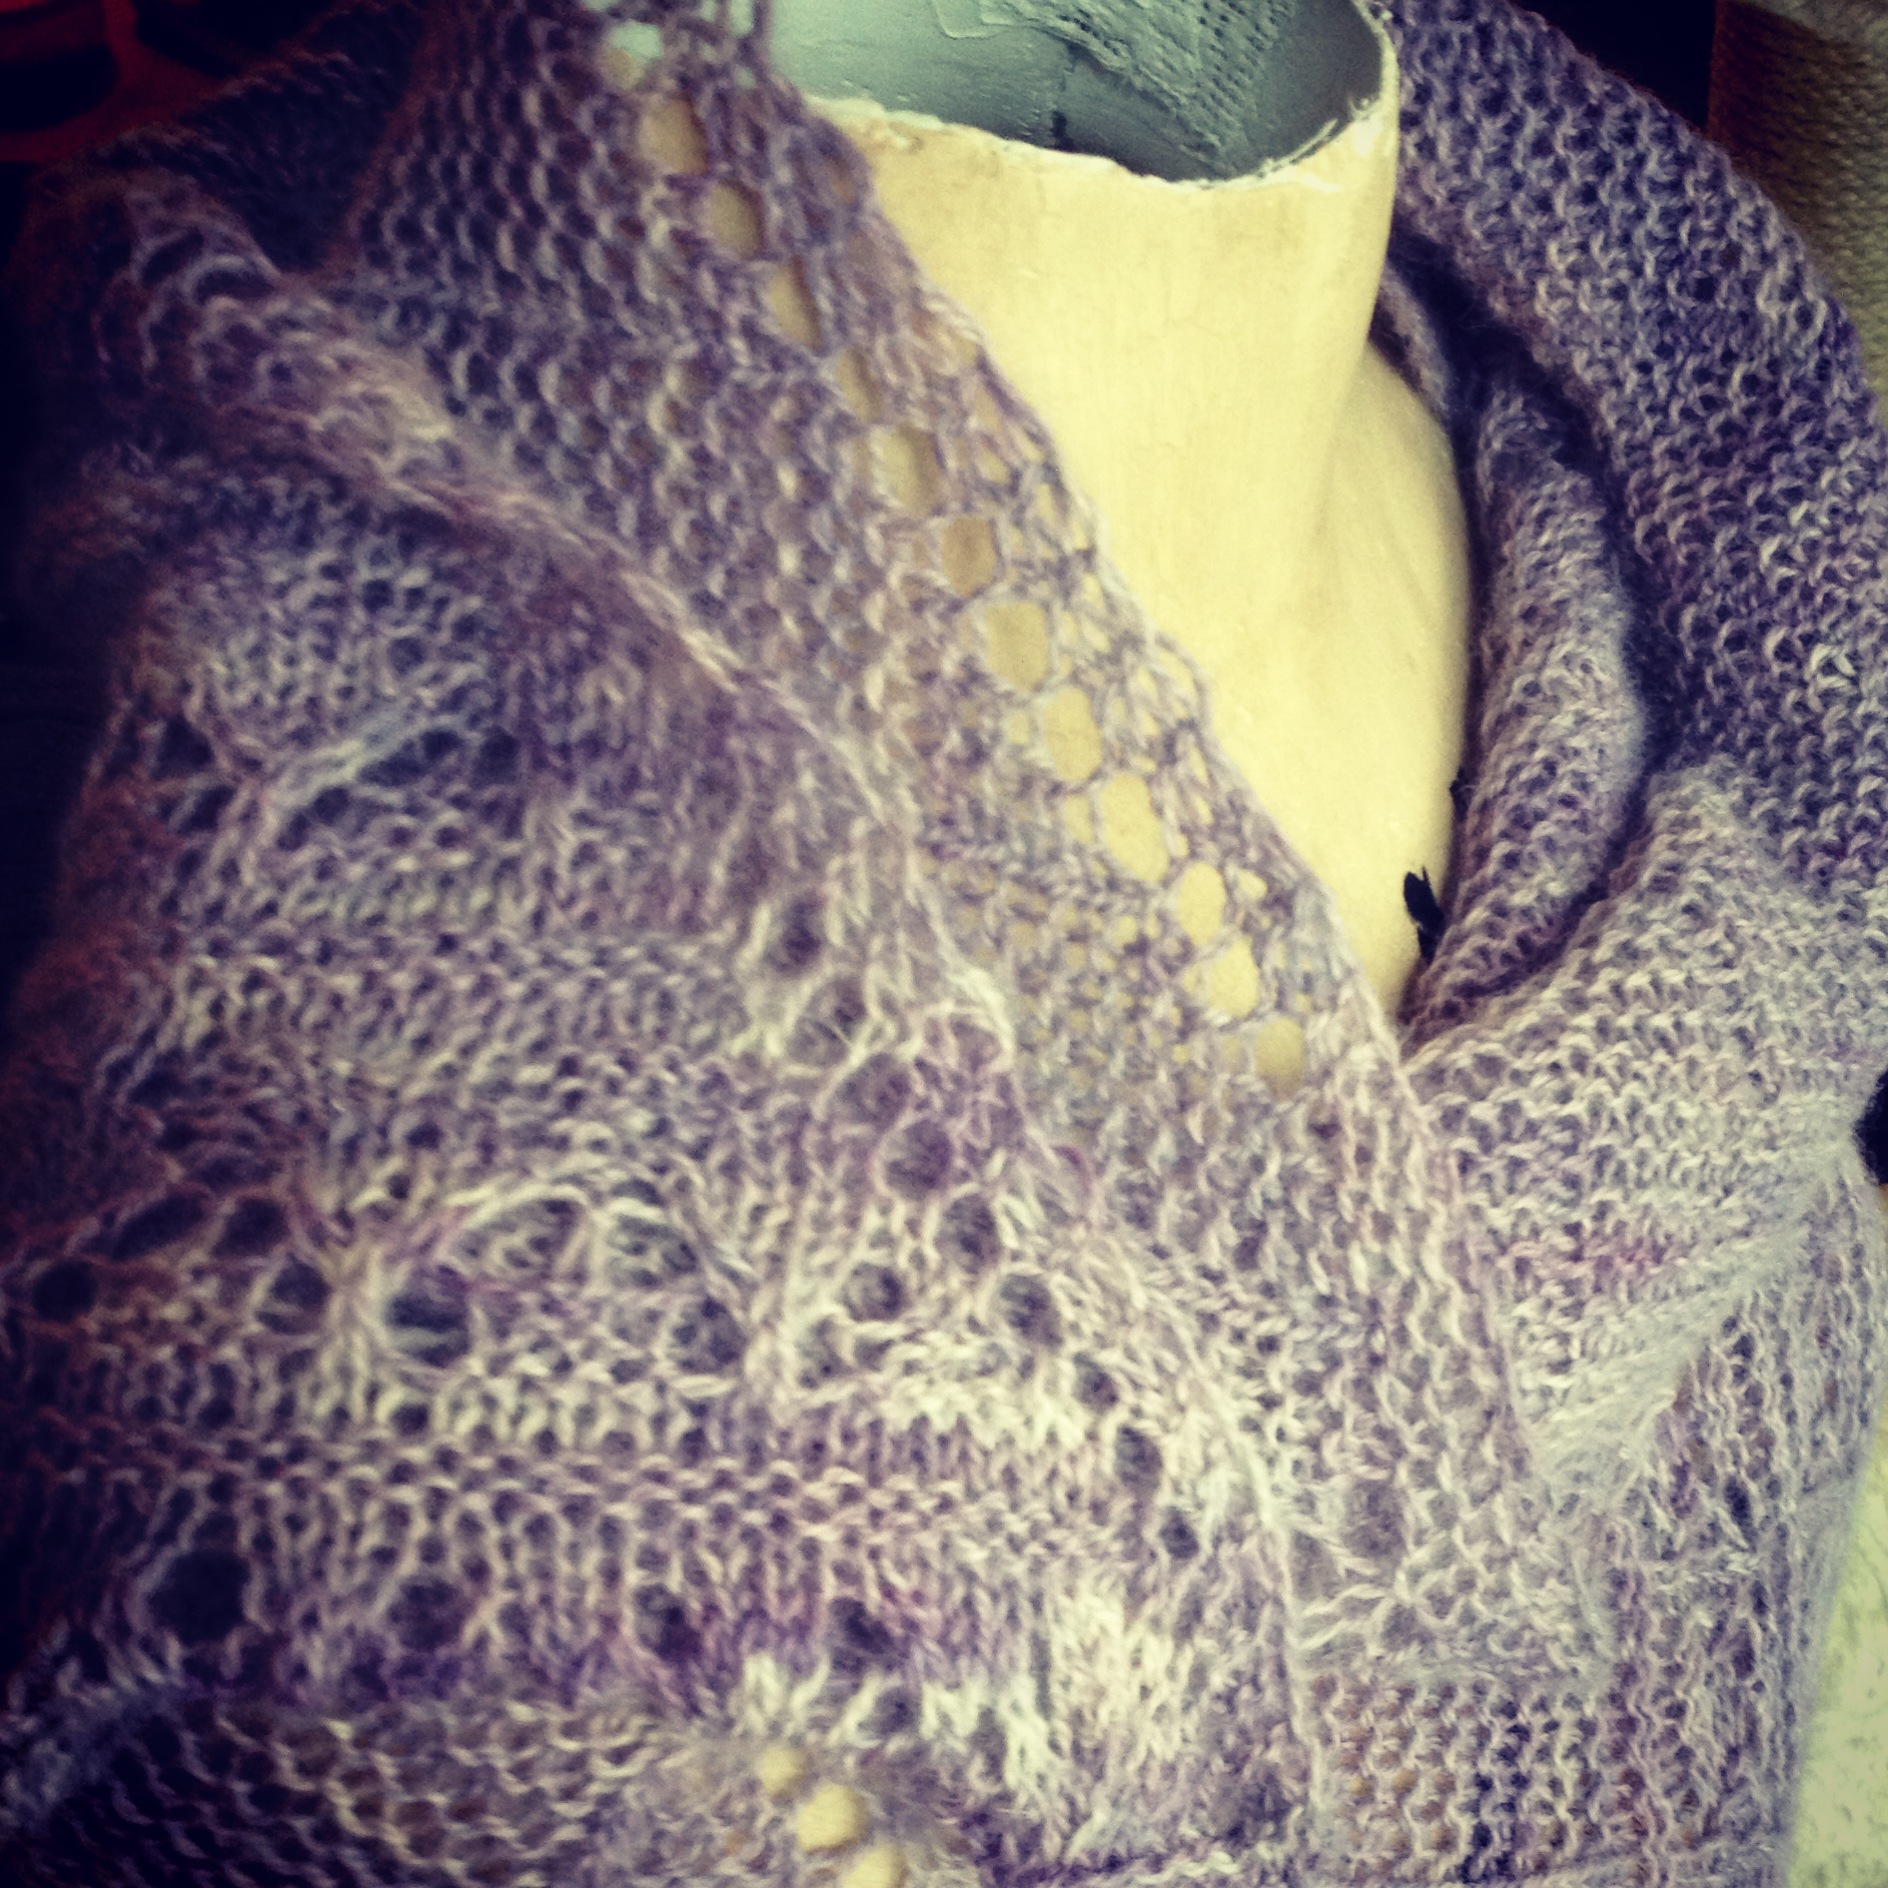 Lumen Shawl by Sivia Harding in Hennessy Fingering, Aster.